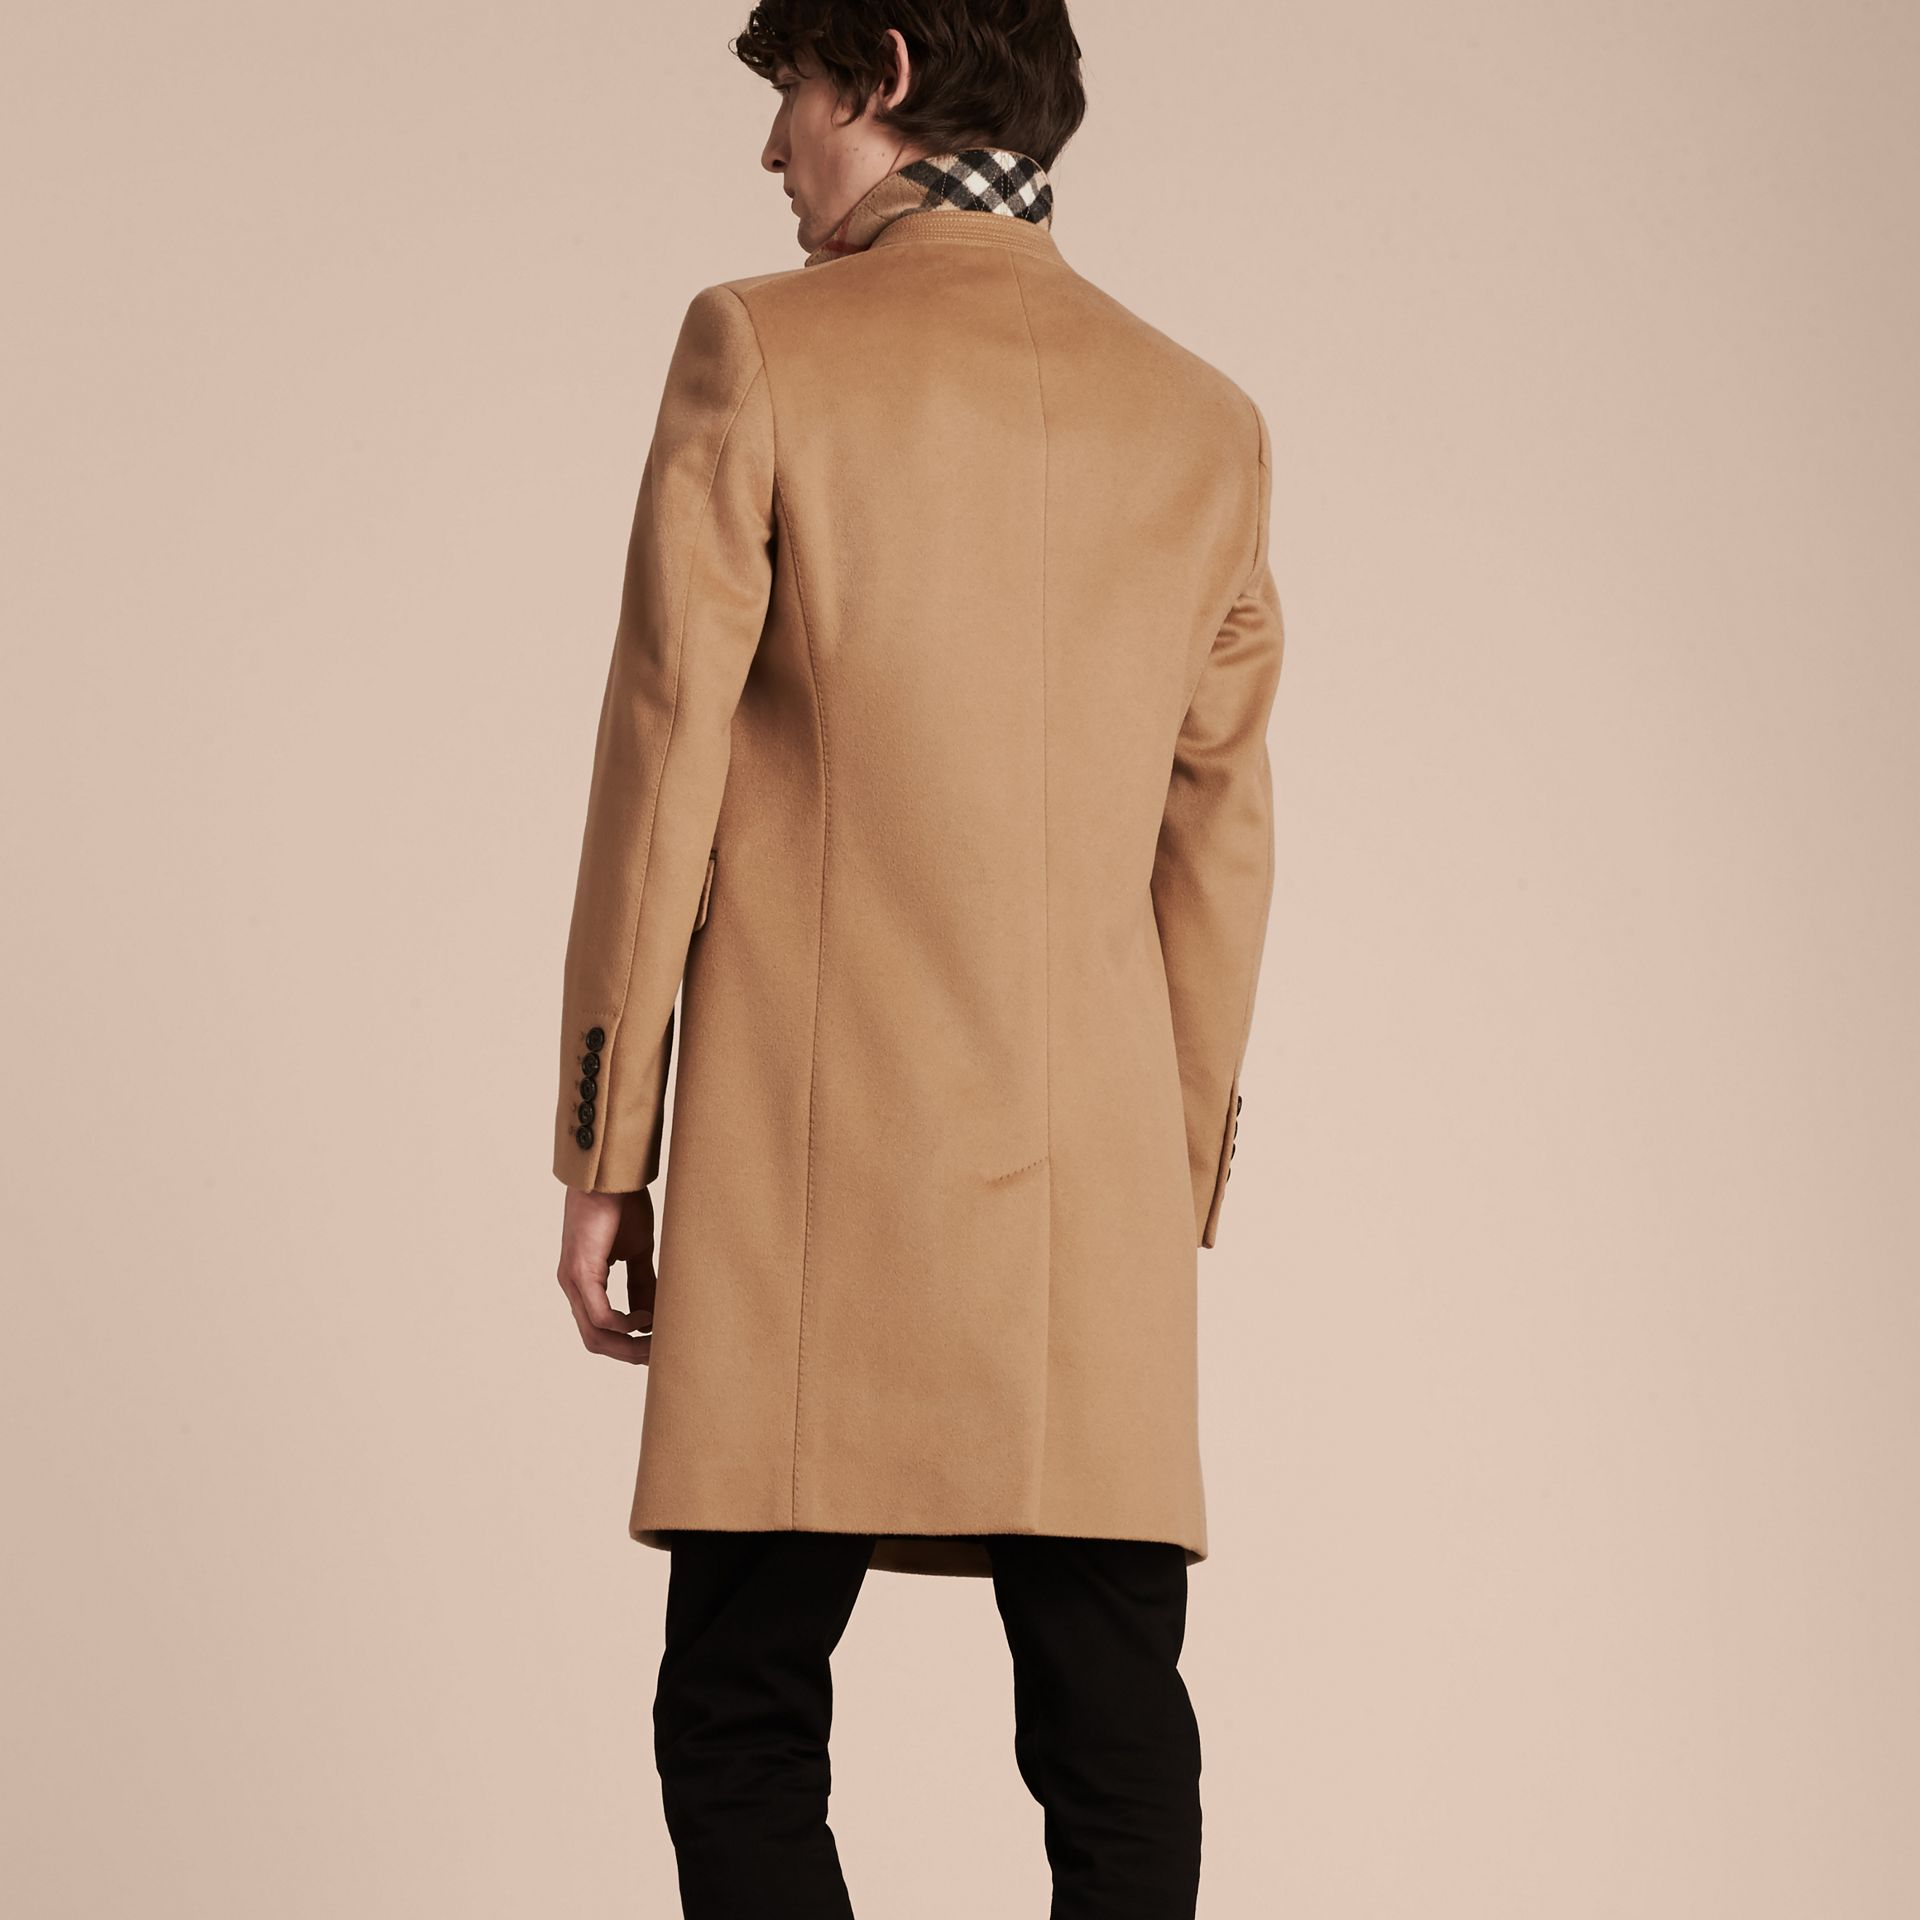 Camel Wool Cashmere Tailored Coat Camel - gallery image 3